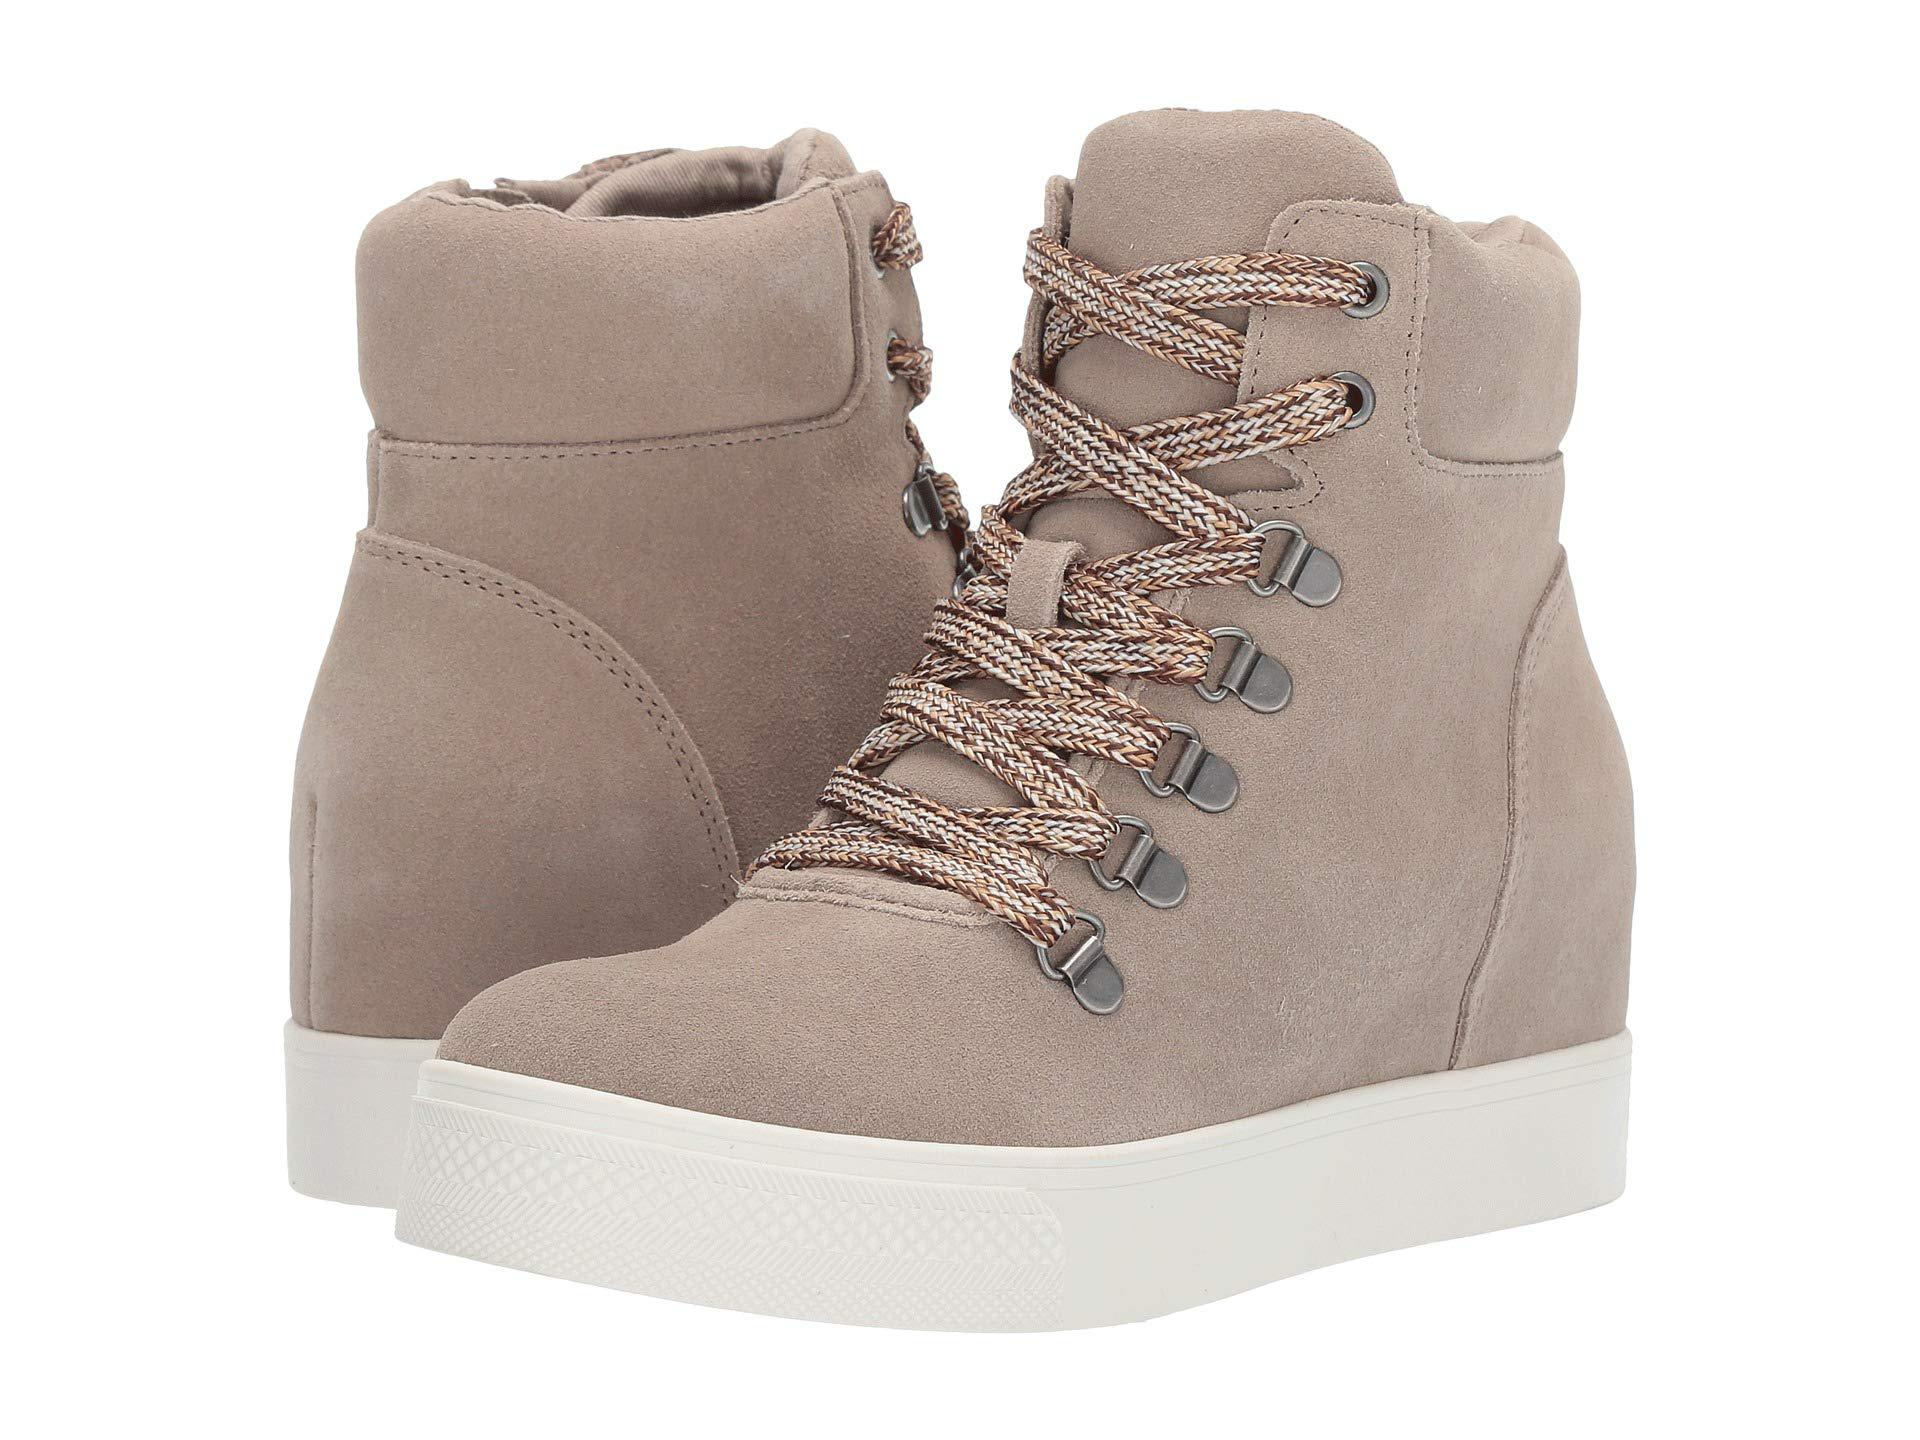 6bd0ed2daf3 Lyst - Steve Madden Catch Wedge Sneaker (taupe) Women s Lace Up ...